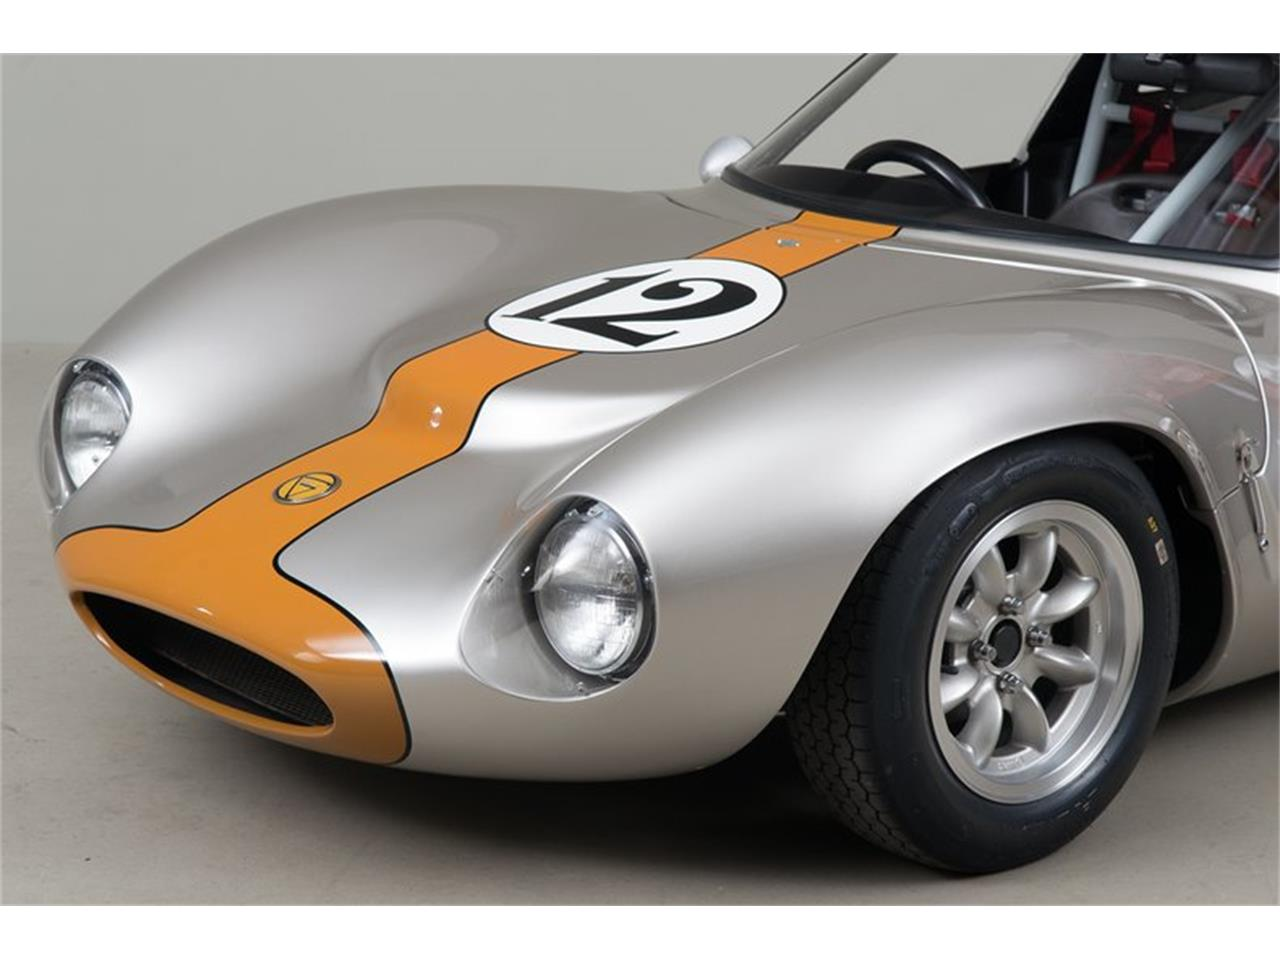 1967 Ginetta G12 for sale in Scotts Valley, CA – photo 22